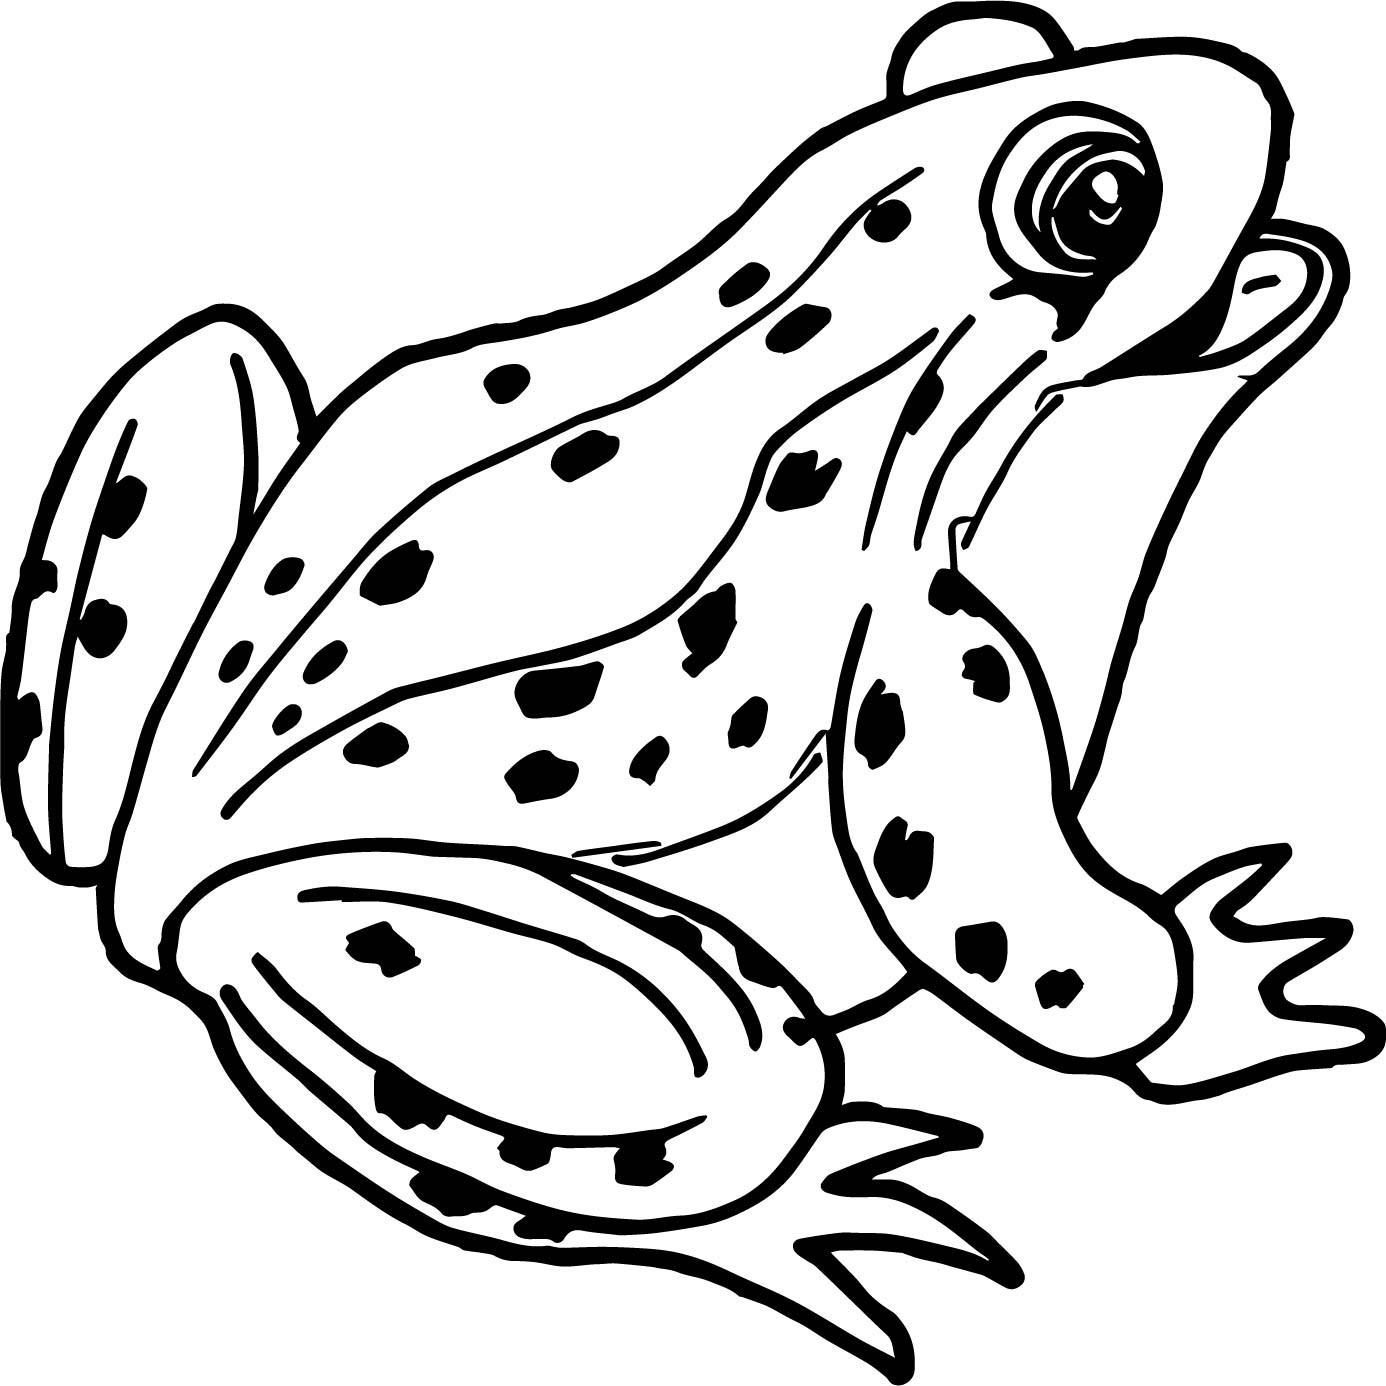 coqui coloring page the best free coqui drawing images download from 63 free page coqui coloring